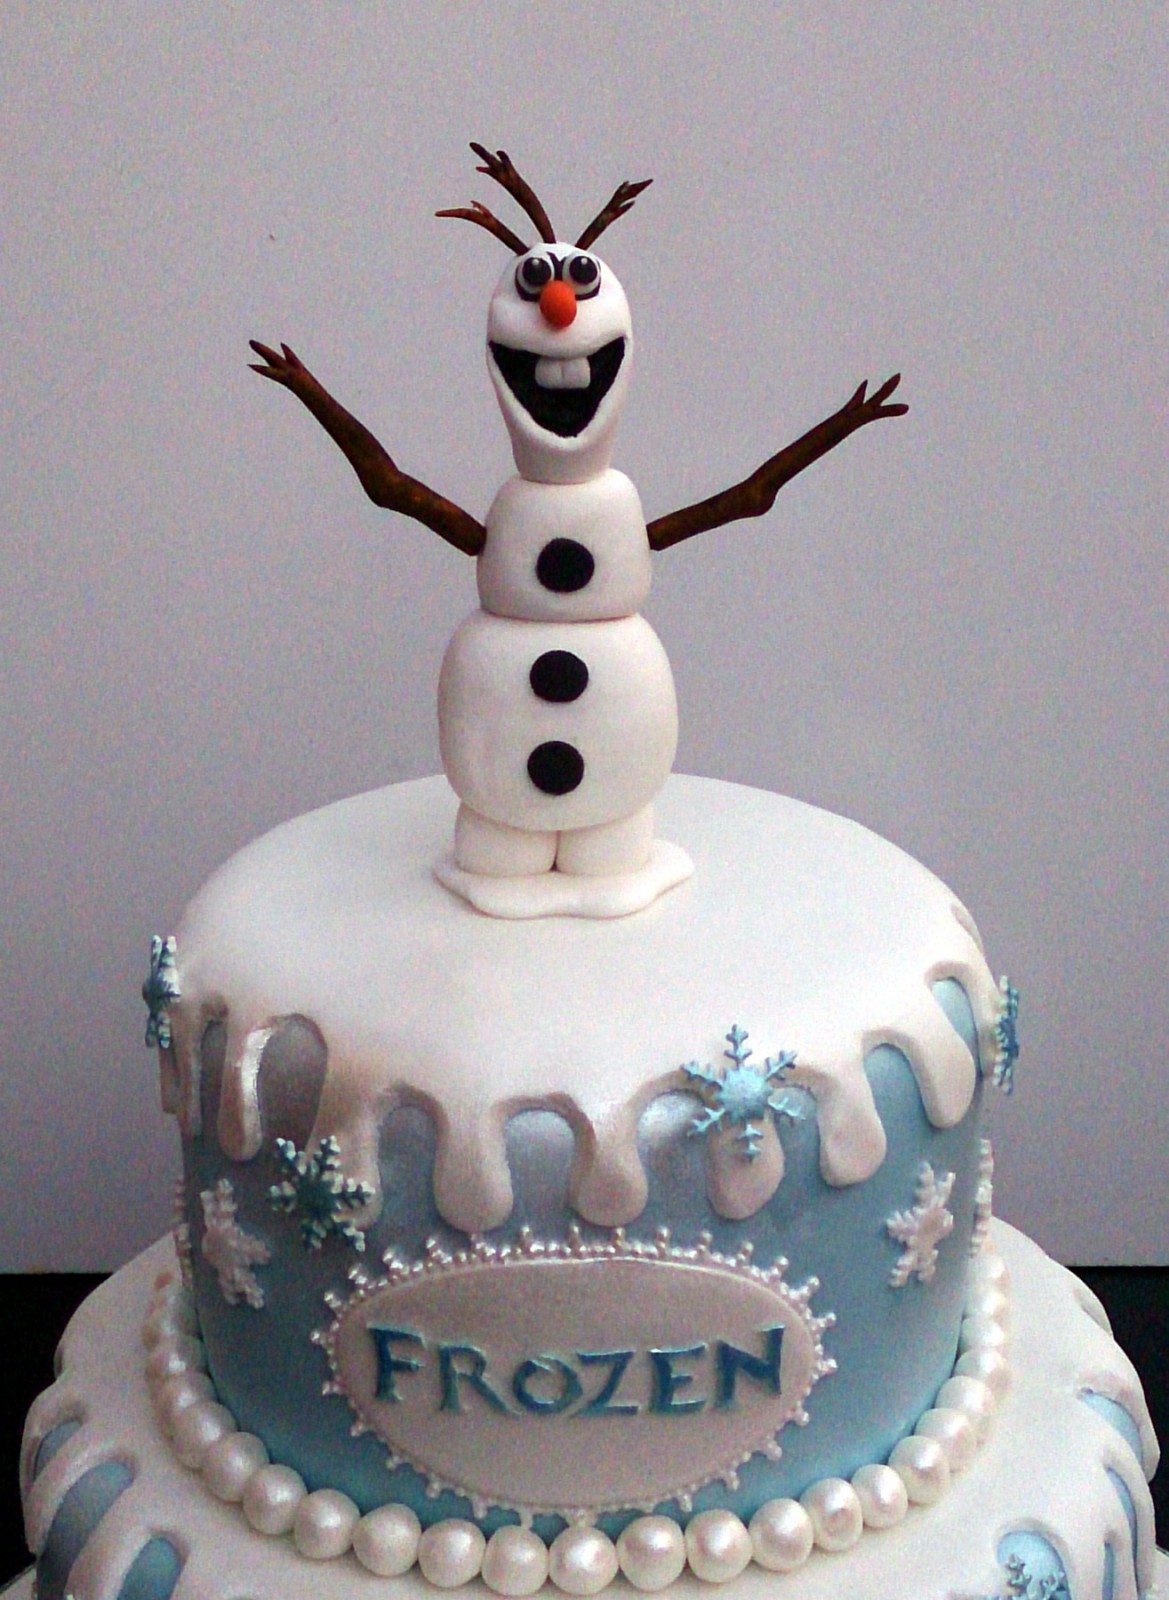 Disney Frozen Themed Cake With Olaf Anna And Elsa 171 Susie